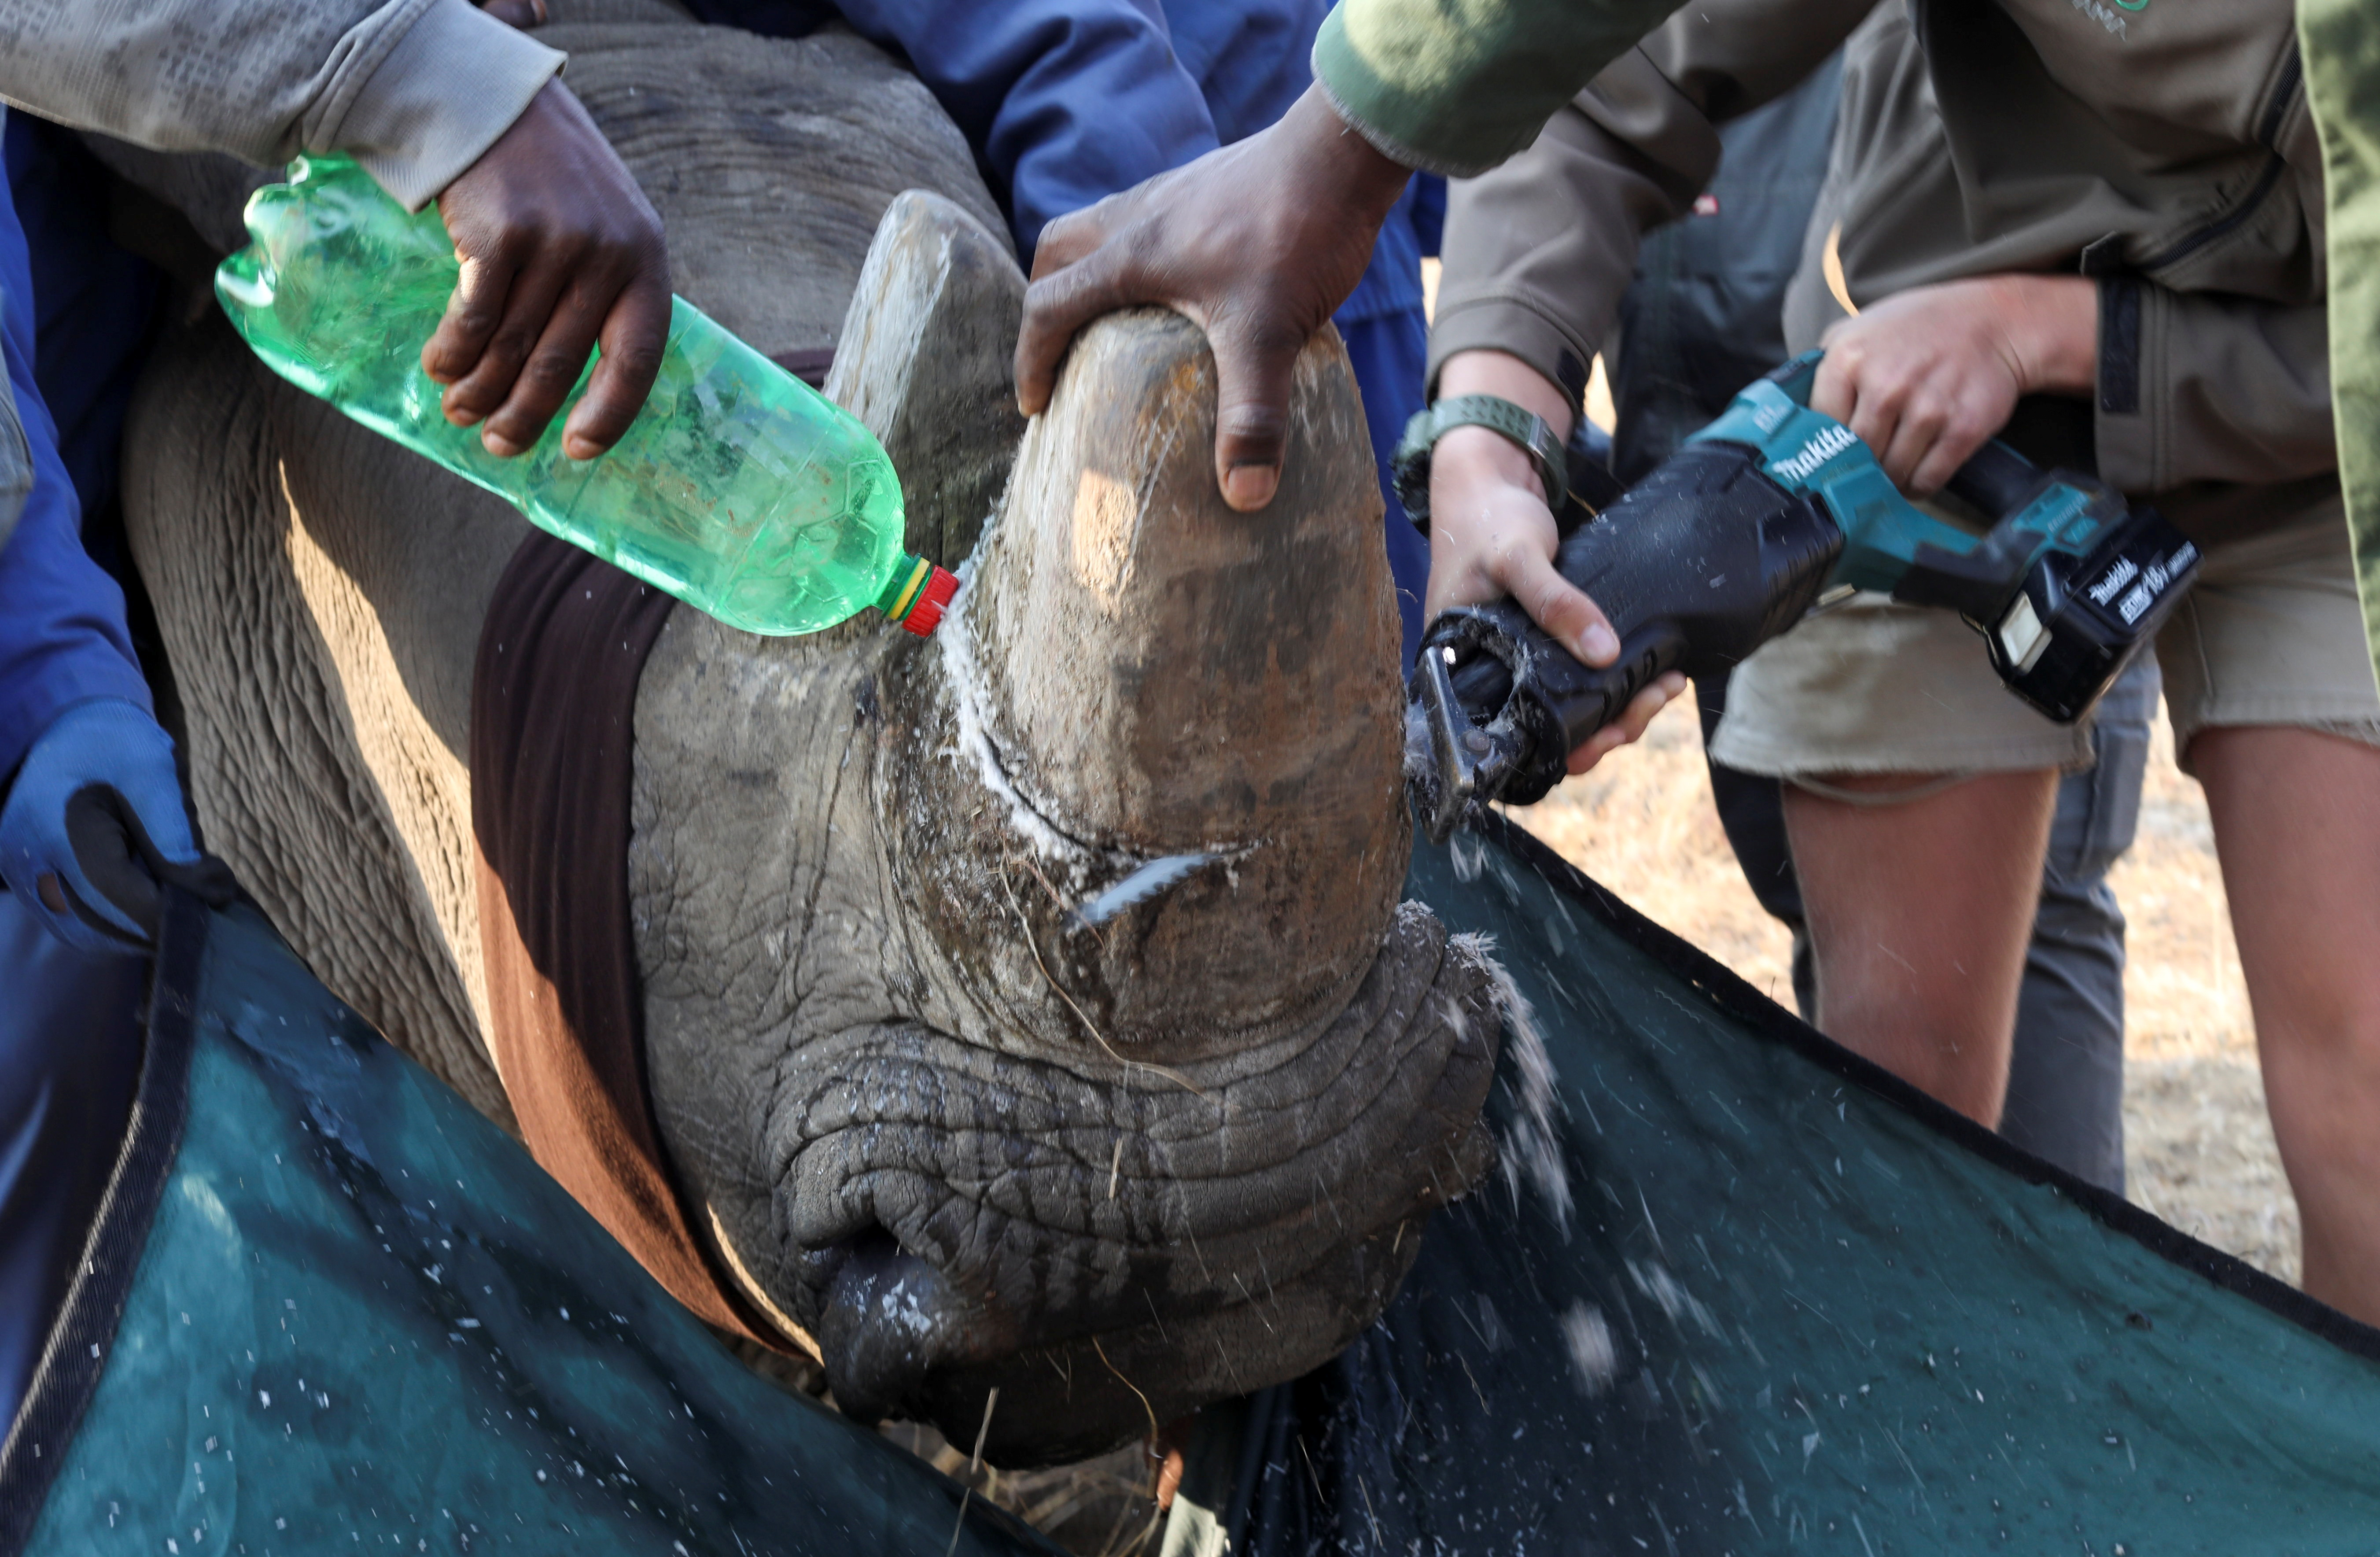 A tranquillised rhino is dehorned at the Buffalo Dream Ranch, the biggest private rhino sanctuary on the continent, in Klerksdorp, South Africa's North West Province, September 6, 2021. Picture taken September 6, 2021. REUTERS/Siphiwe Sibeko